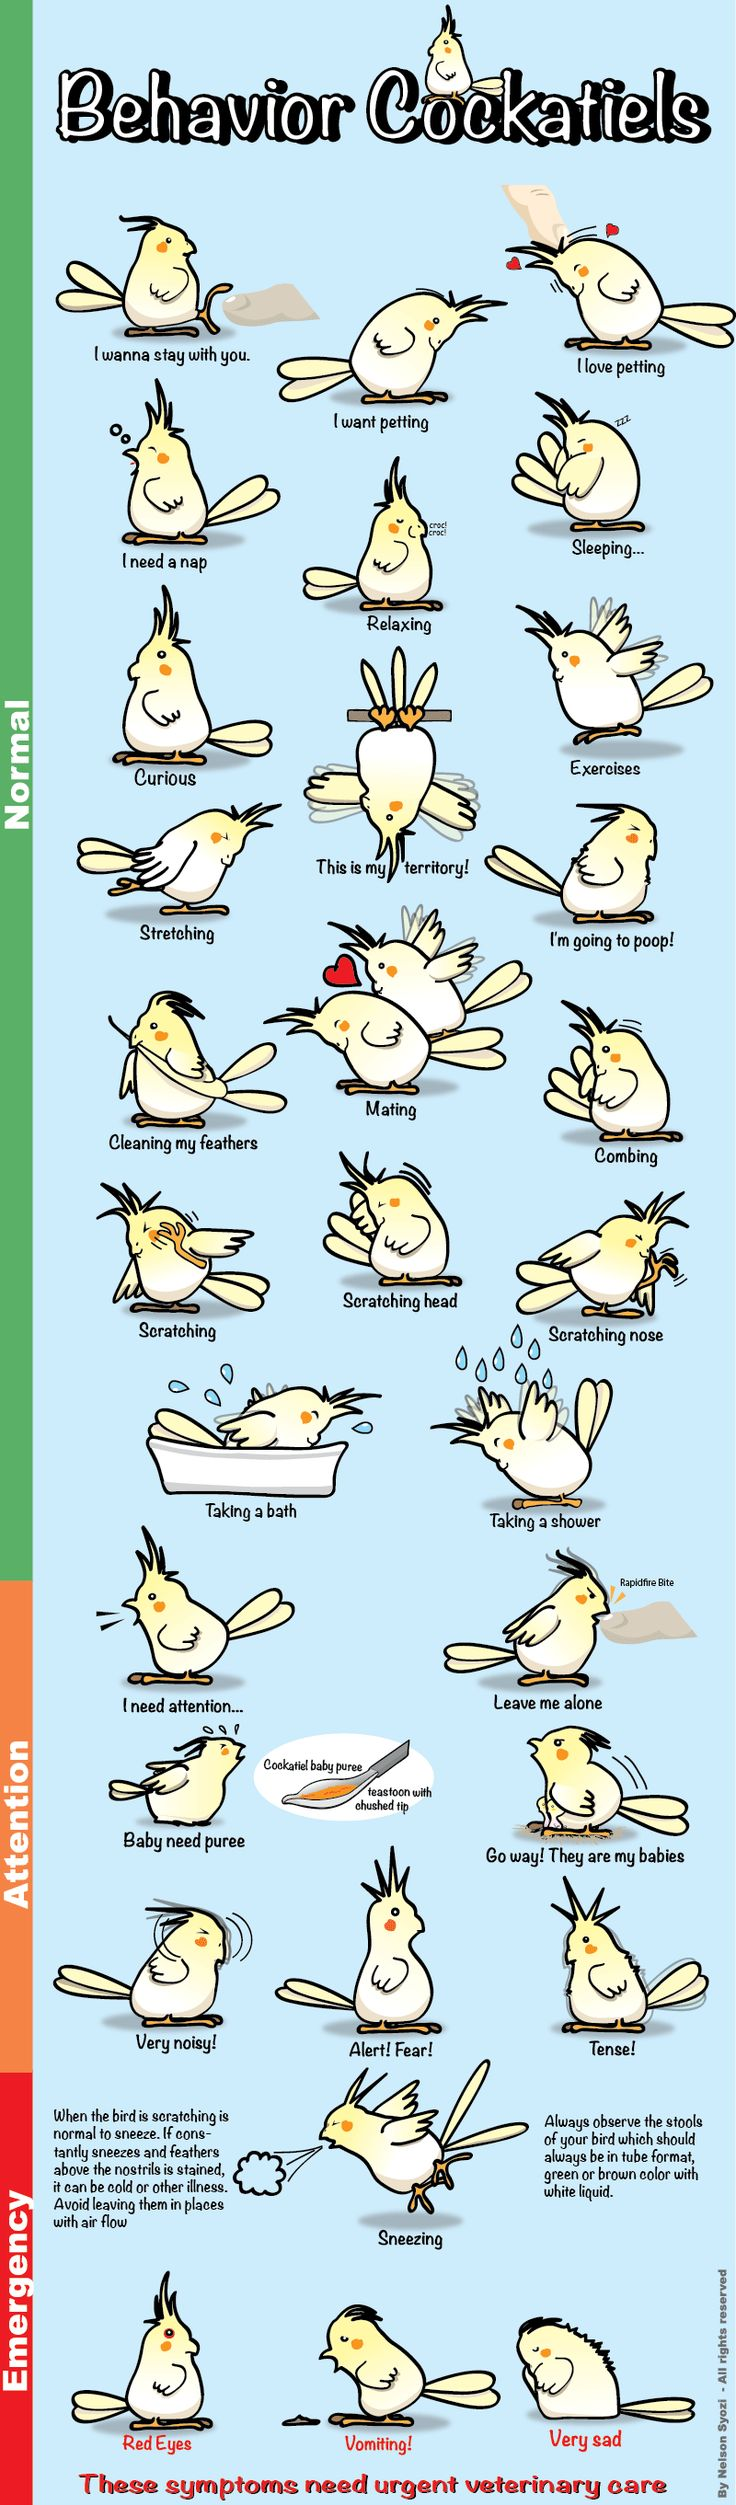 Pet Bird Stuff... \Behavior guide for cockatiels\ By Nelson Syozi